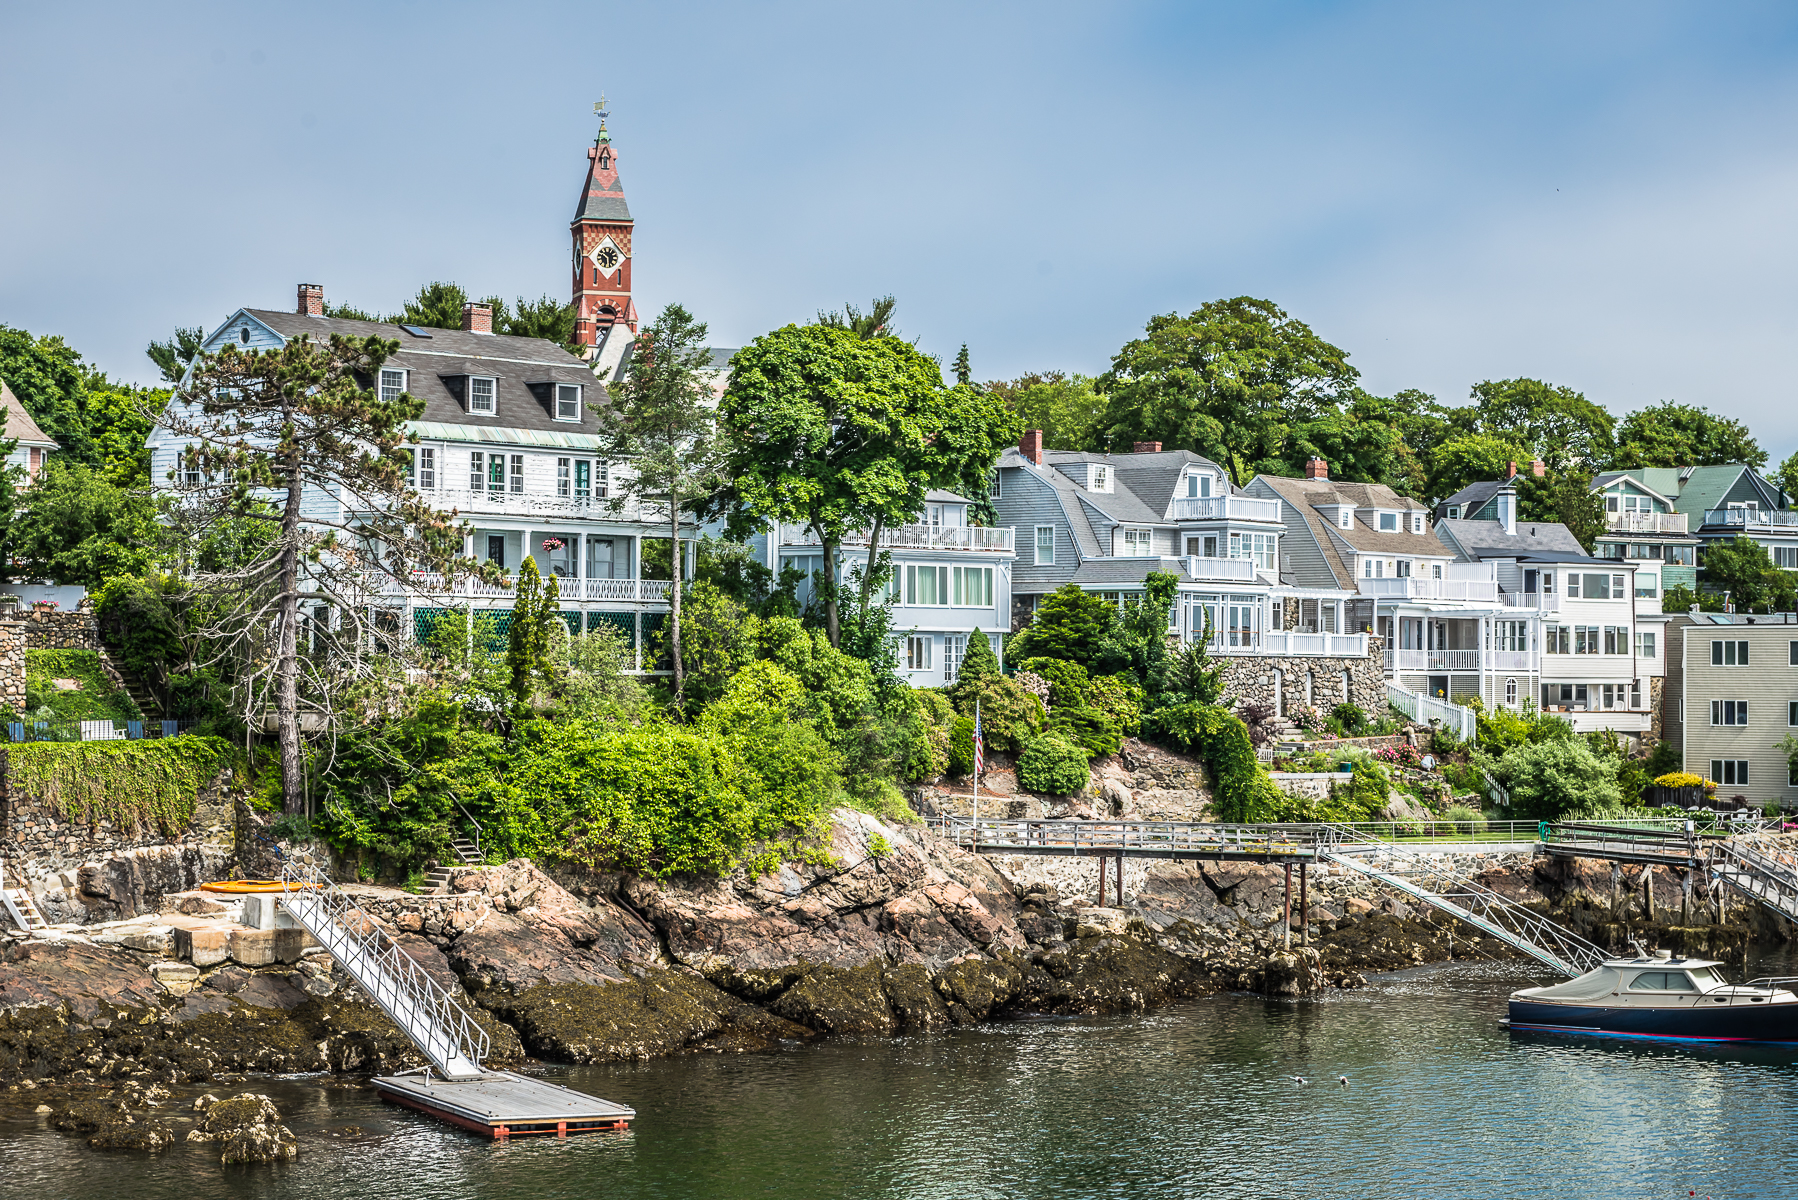 Condominium for Sale at 14 Skinners Path, Marblehead, MA 14 Skinner's Path Marblehead, Massachusetts 01945 United States